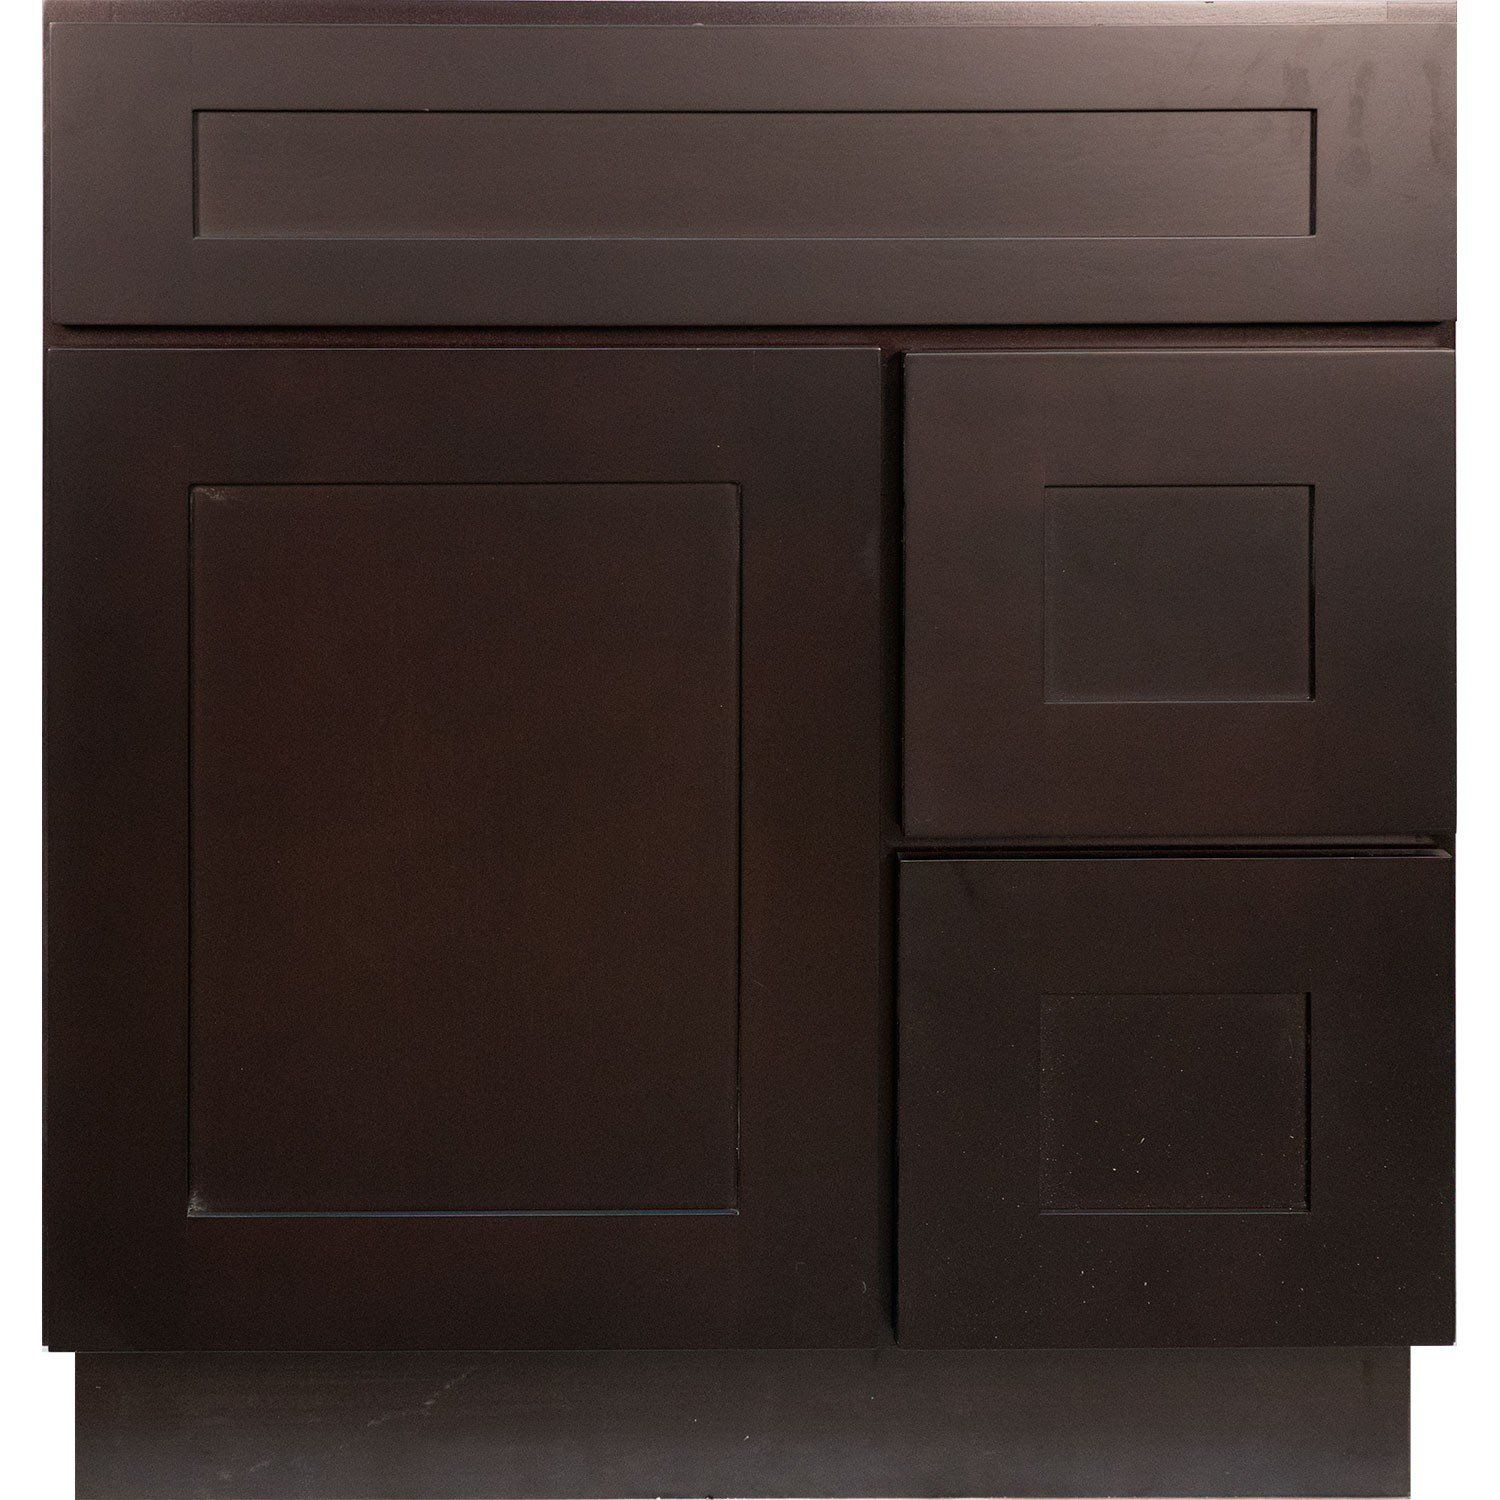 Pics On  Inch Bathroom Vanity Single Sink Cabinet in Shaker Espresso Dark Brown with Soft